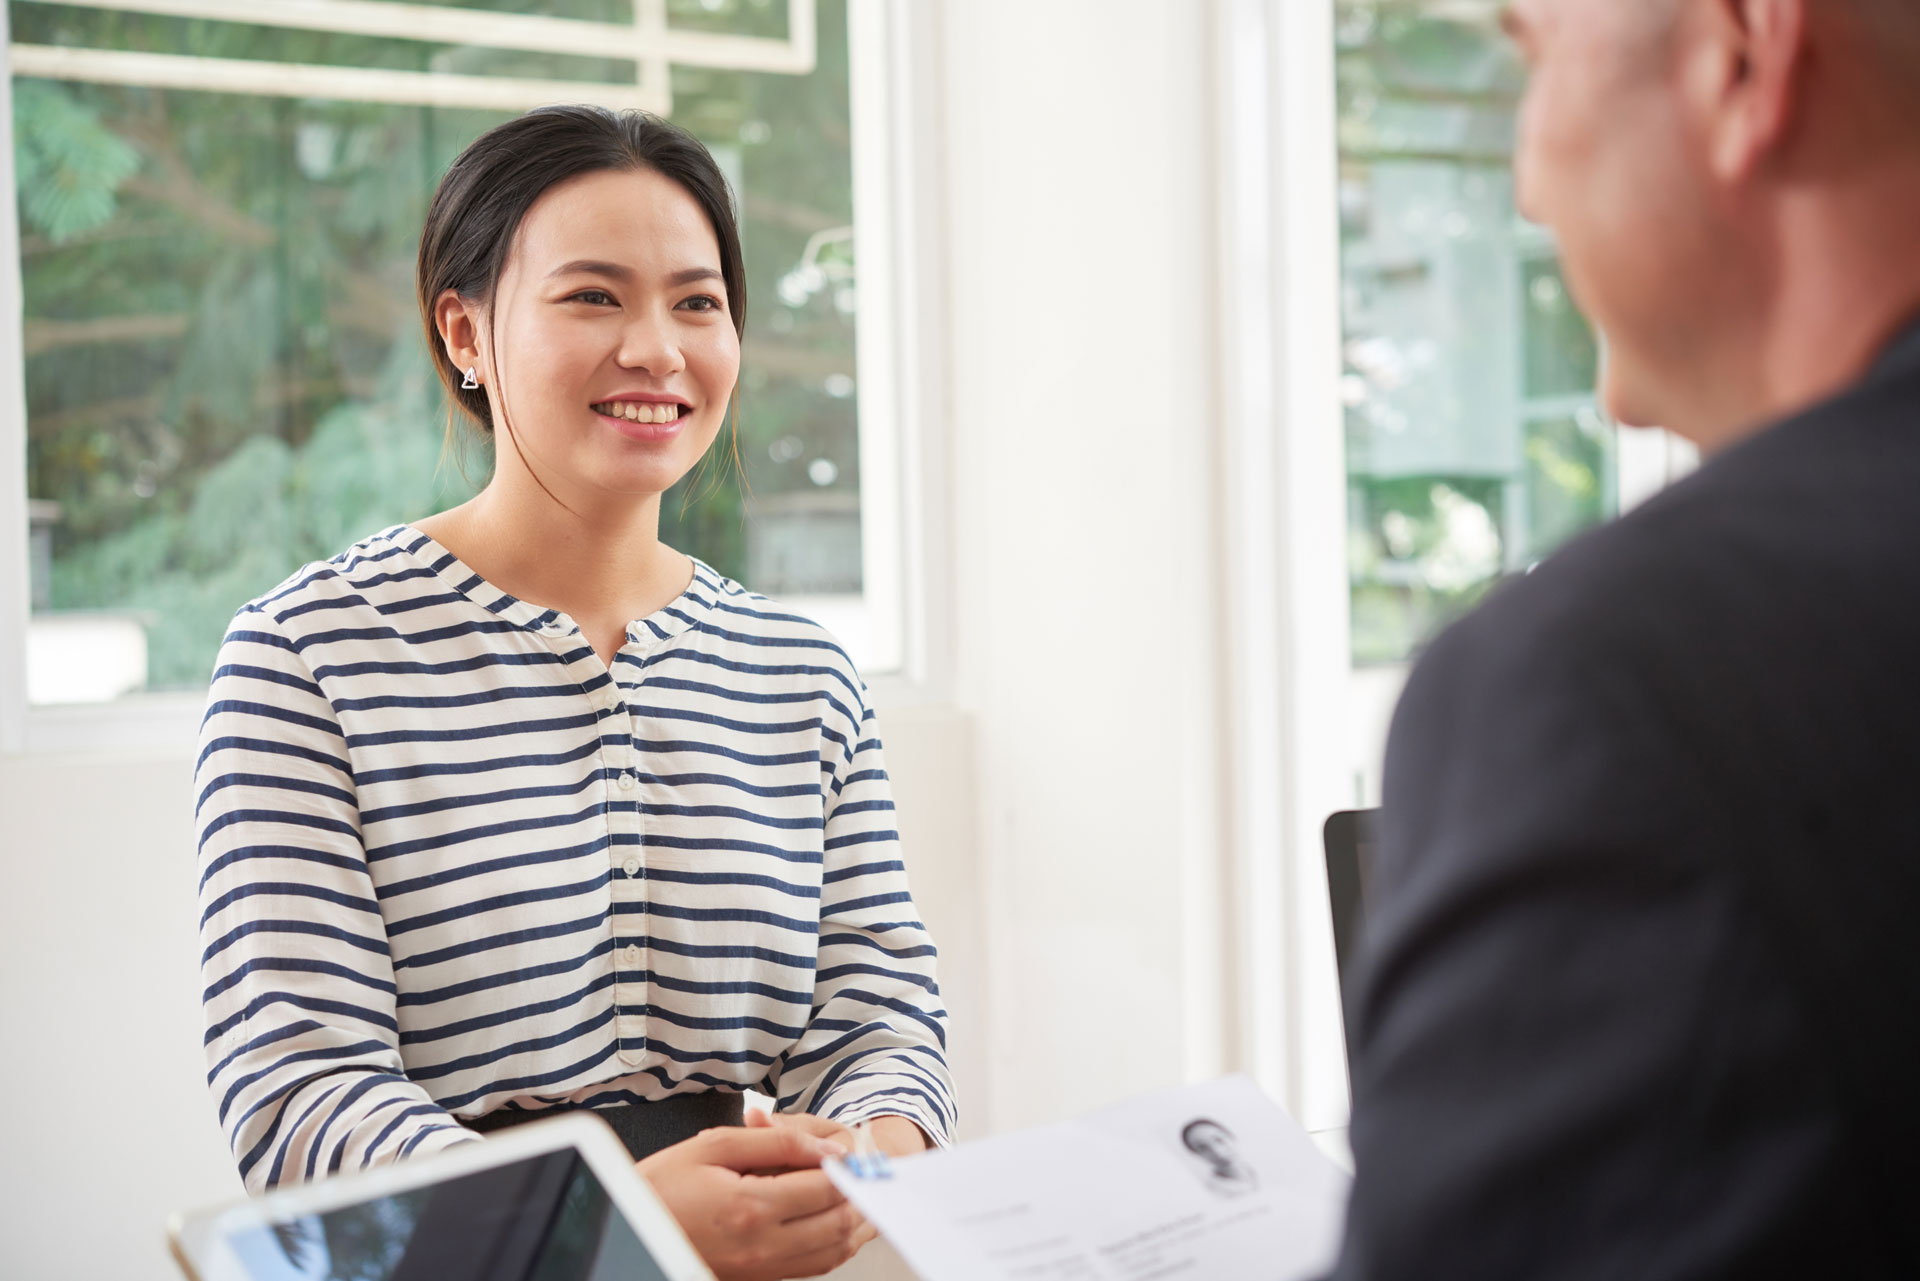 woman-at-business-interview-KPZXGEB